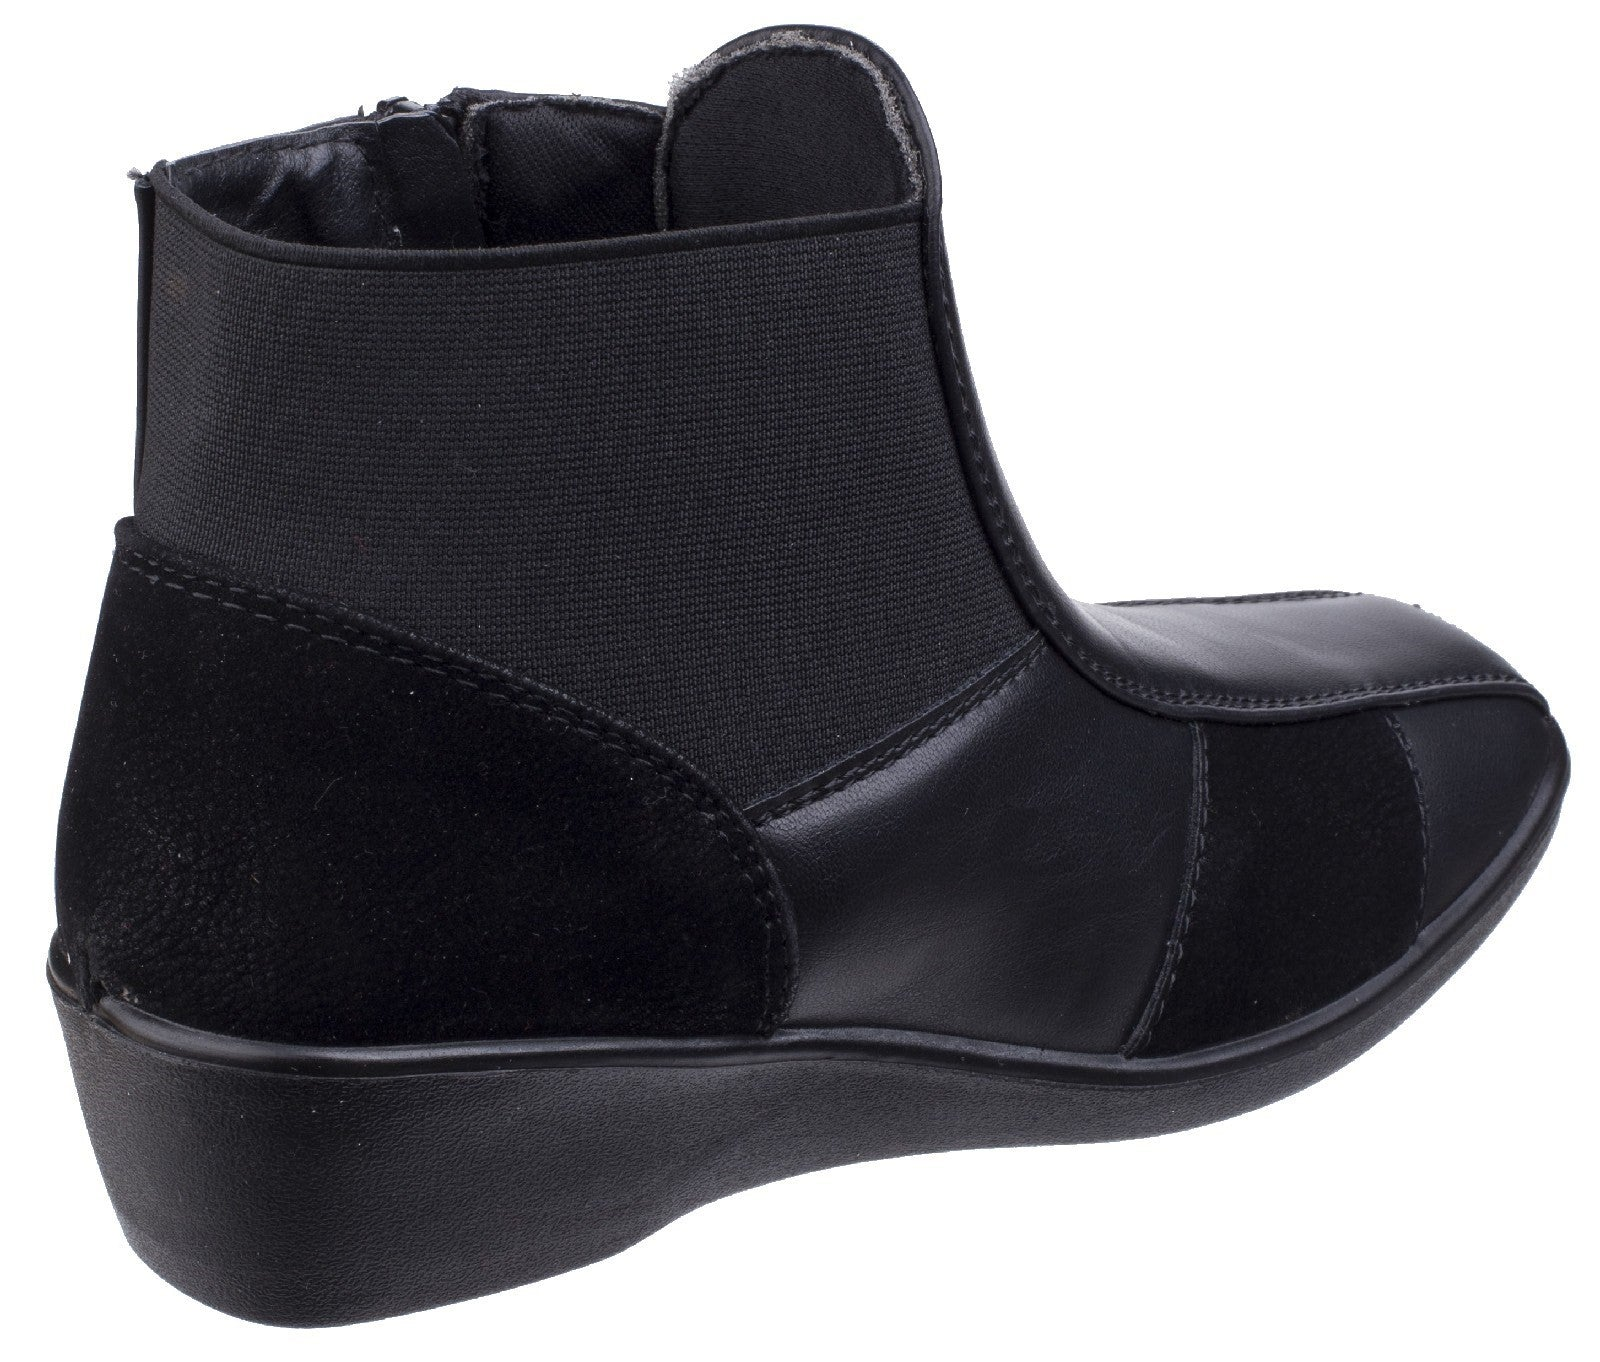 Fleet & Foster Women's Festa Ankle Boot Black 25560-42532